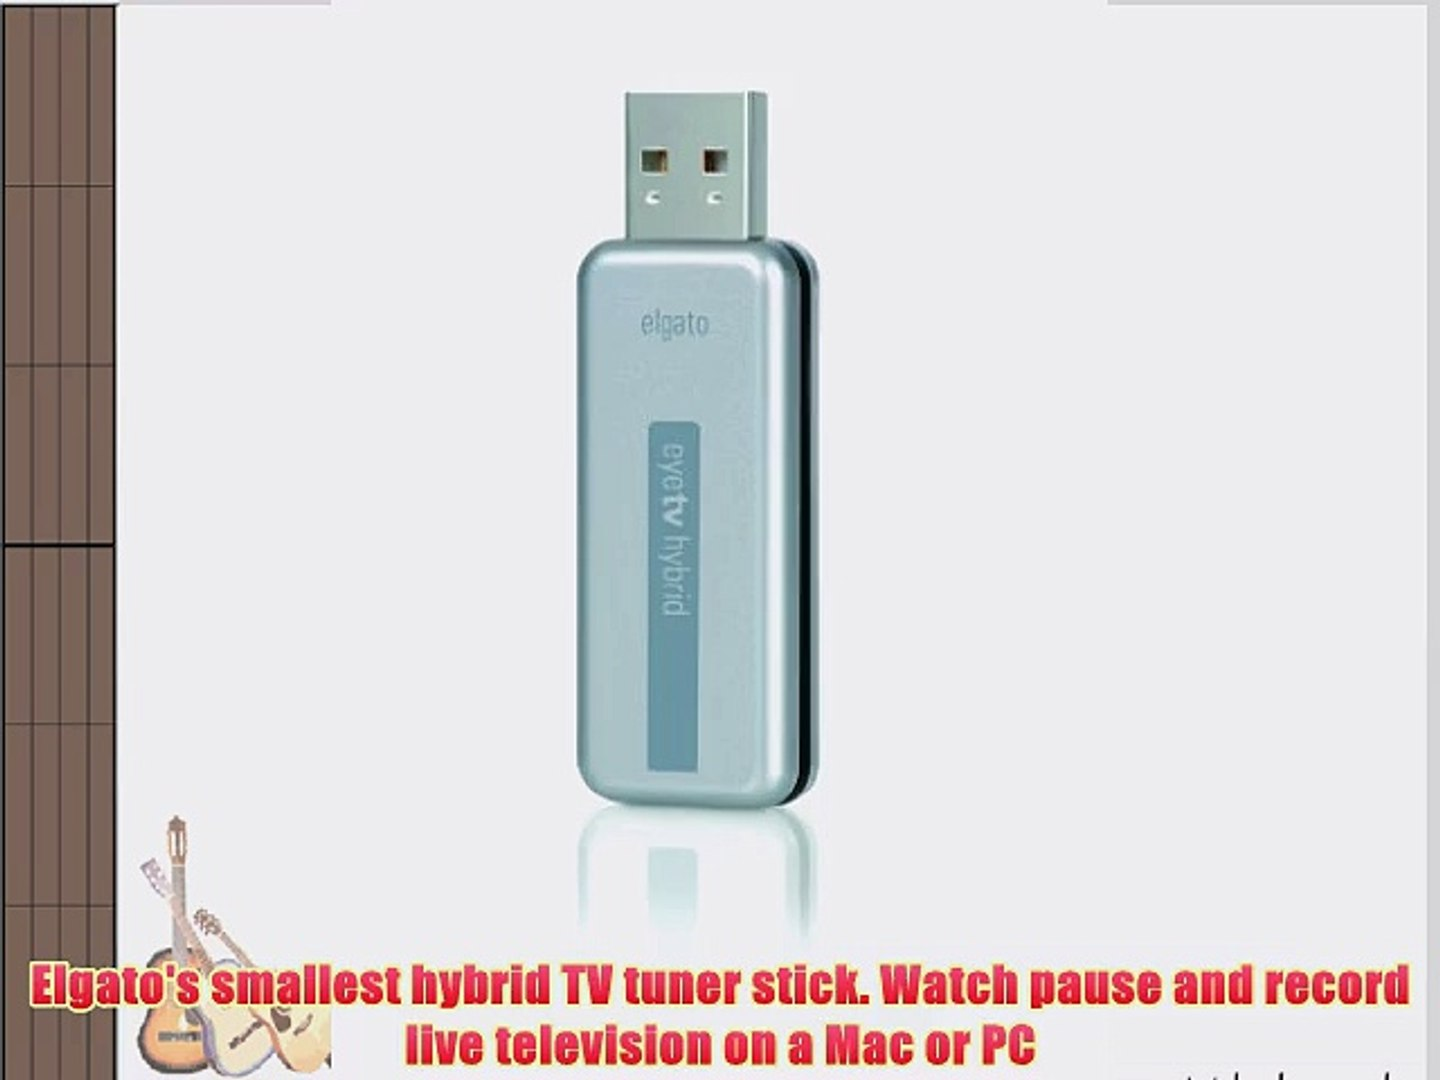 Elgato EyeTV Hybrid TV Tuner Special Edition Version (Includes 2 years of  TV Guide Data valued